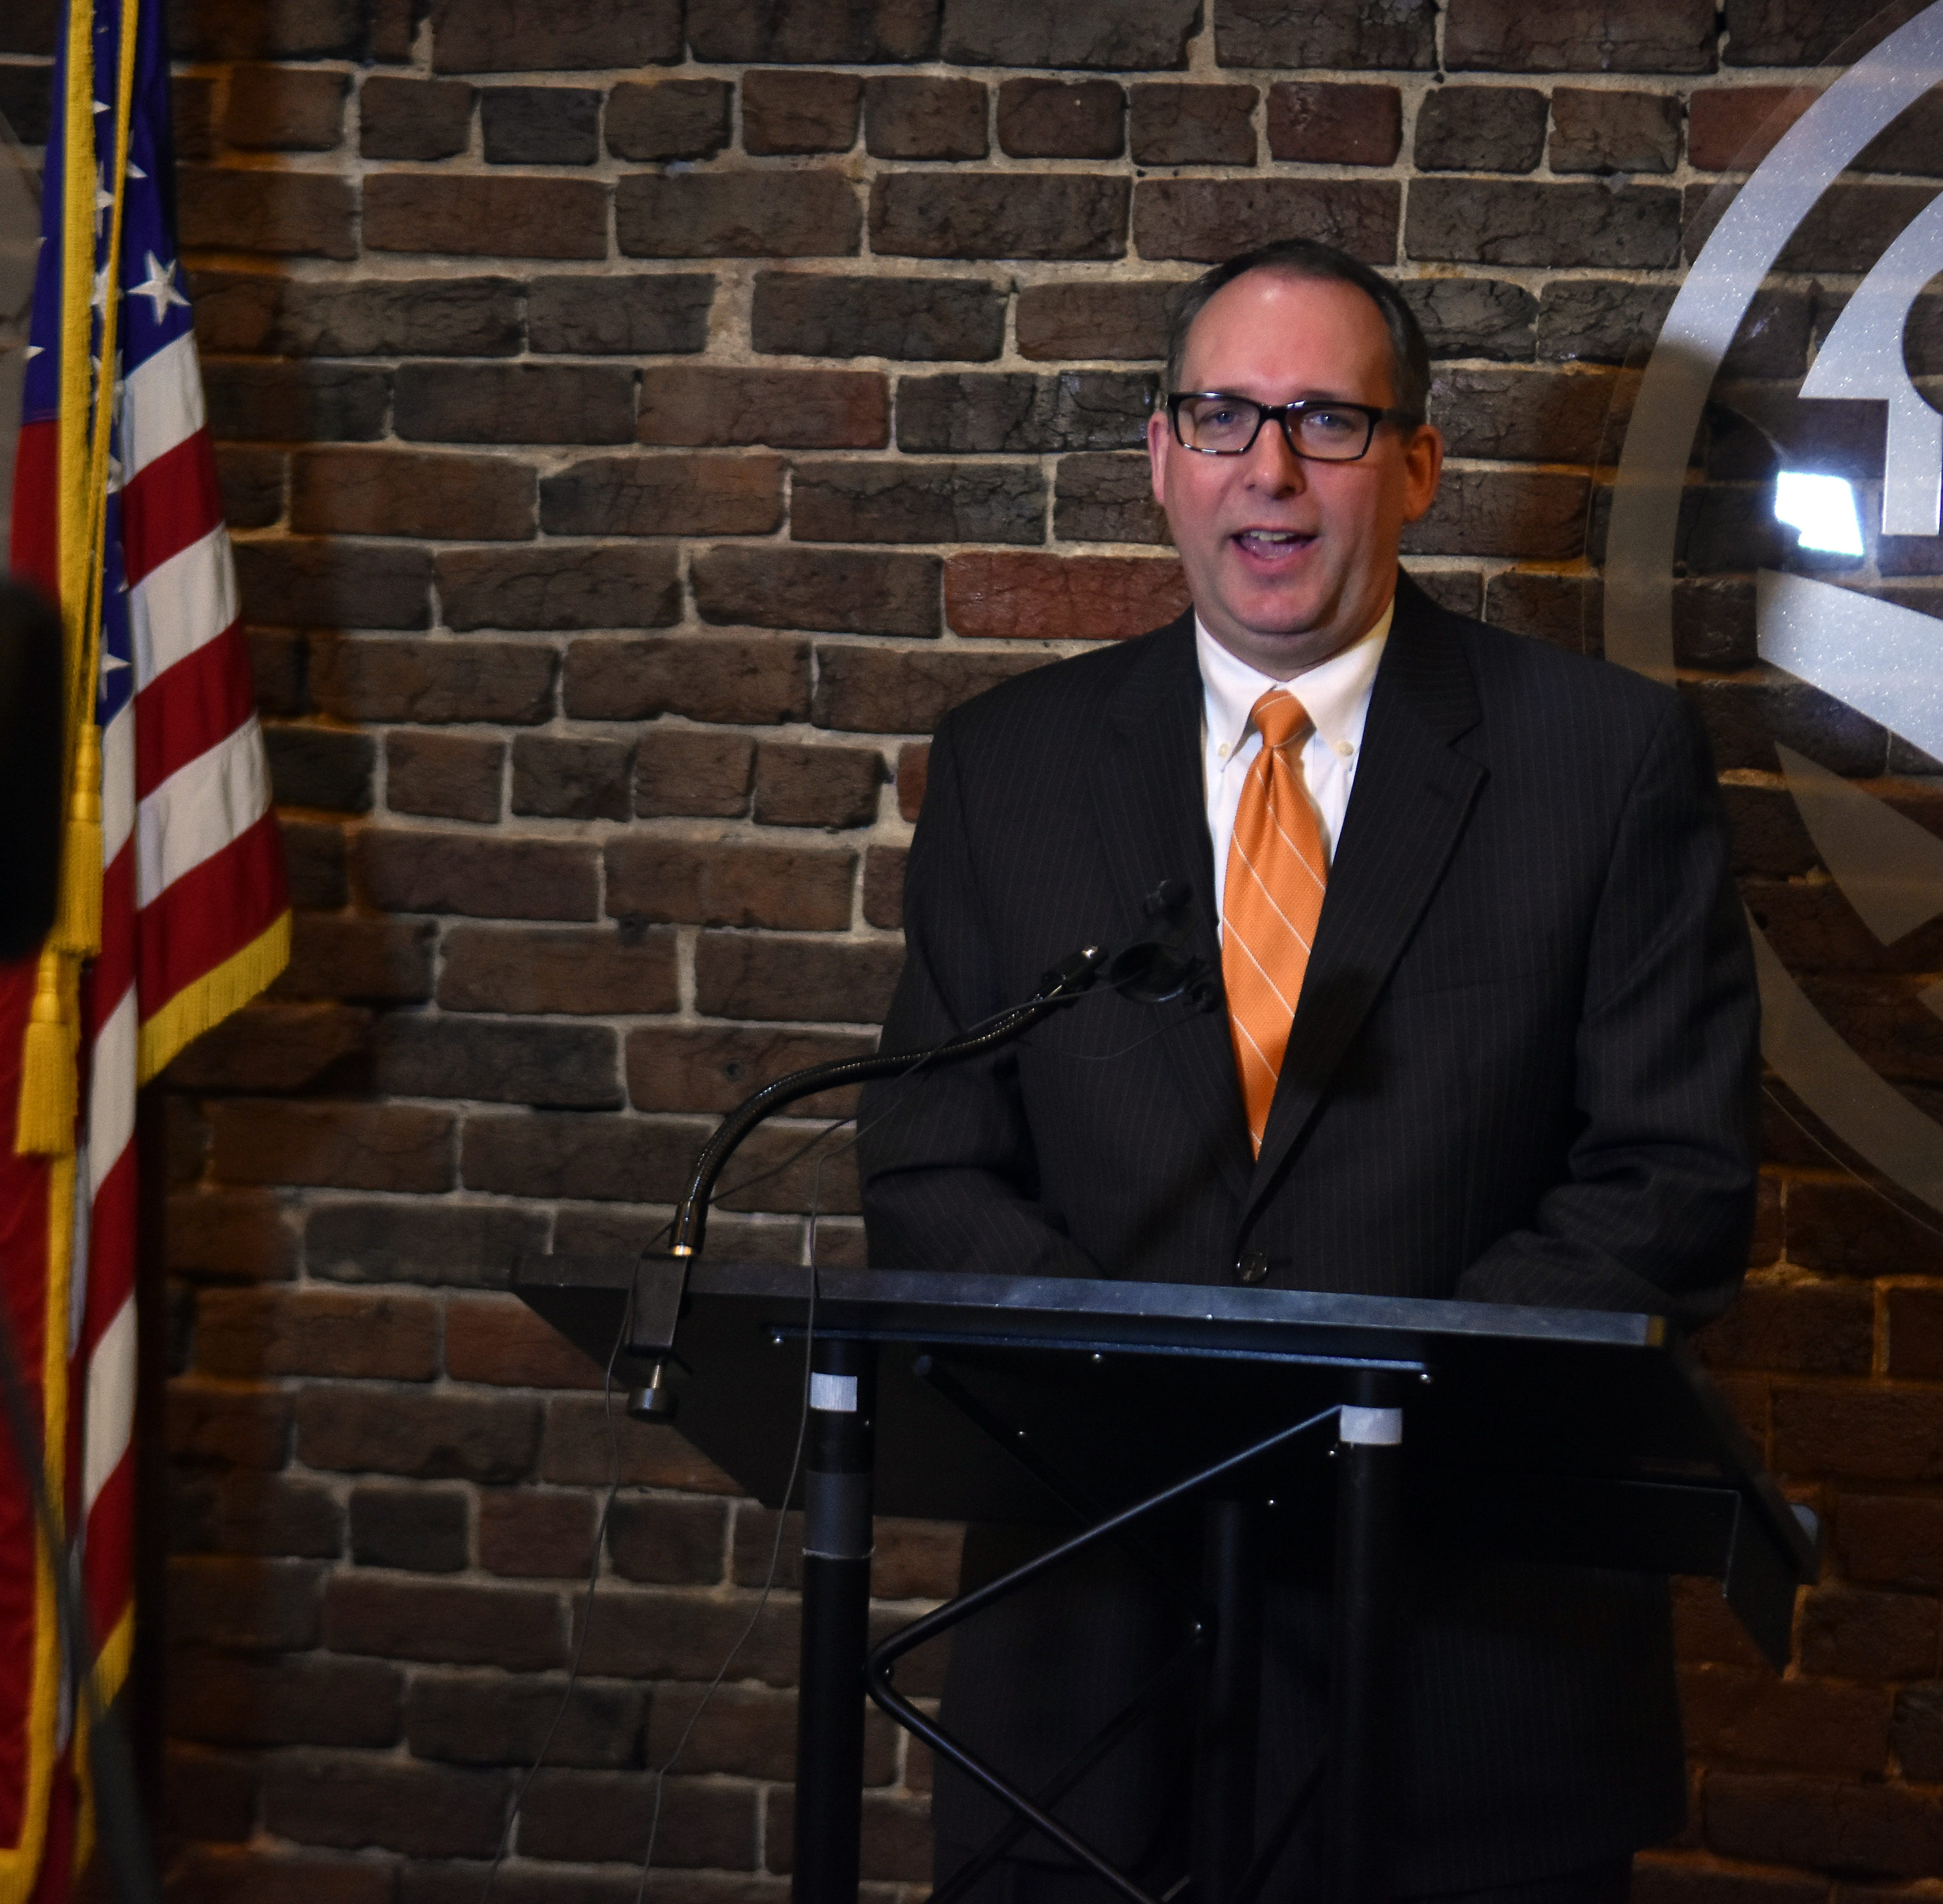 Knoxville Chamber taps new president and CEO from Texas